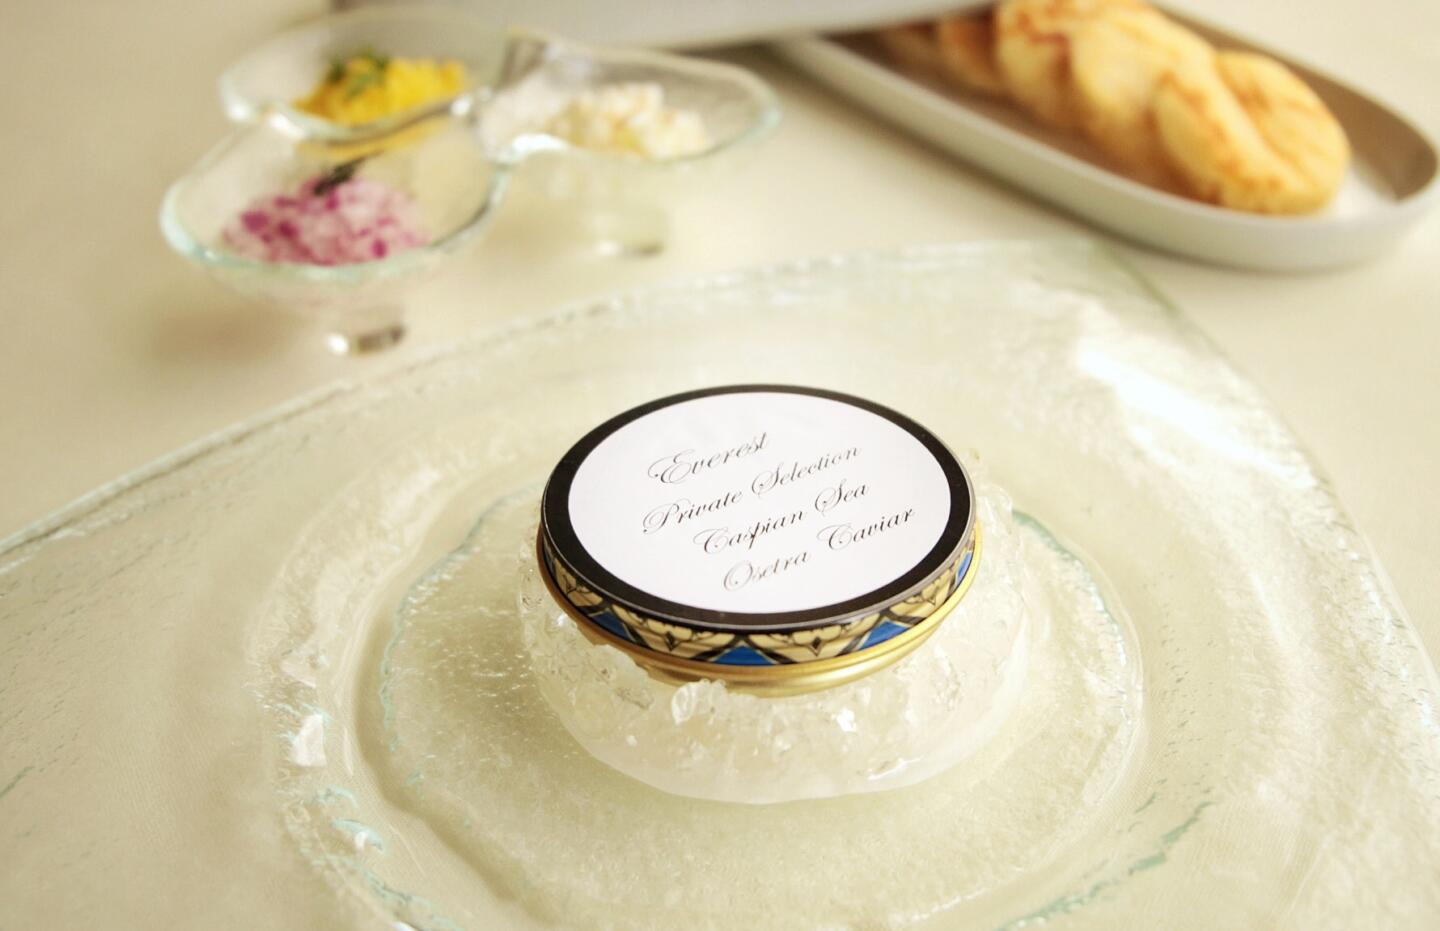 Everest at Home Caviar